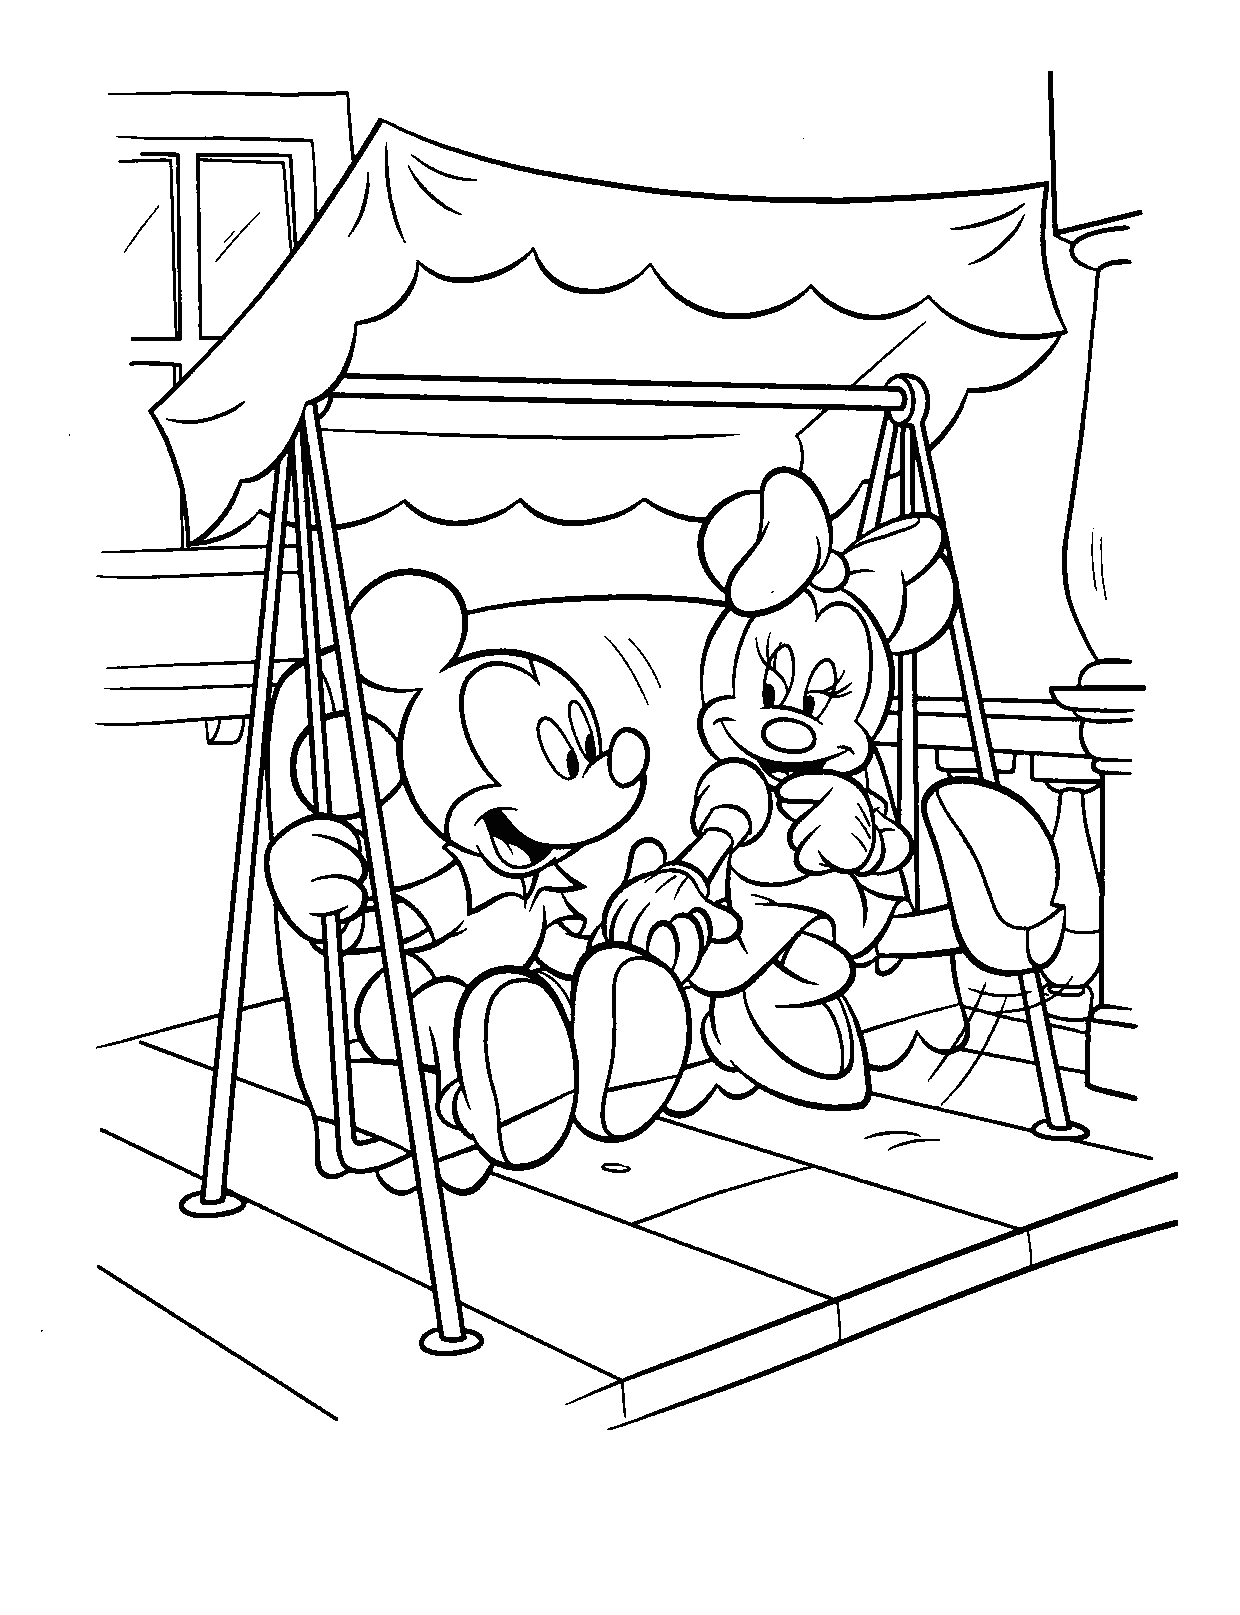 free printable mickey and minnie mouse coloring pages free printable minnie mouse coloring pages for kids mickey printable coloring mouse pages free minnie and